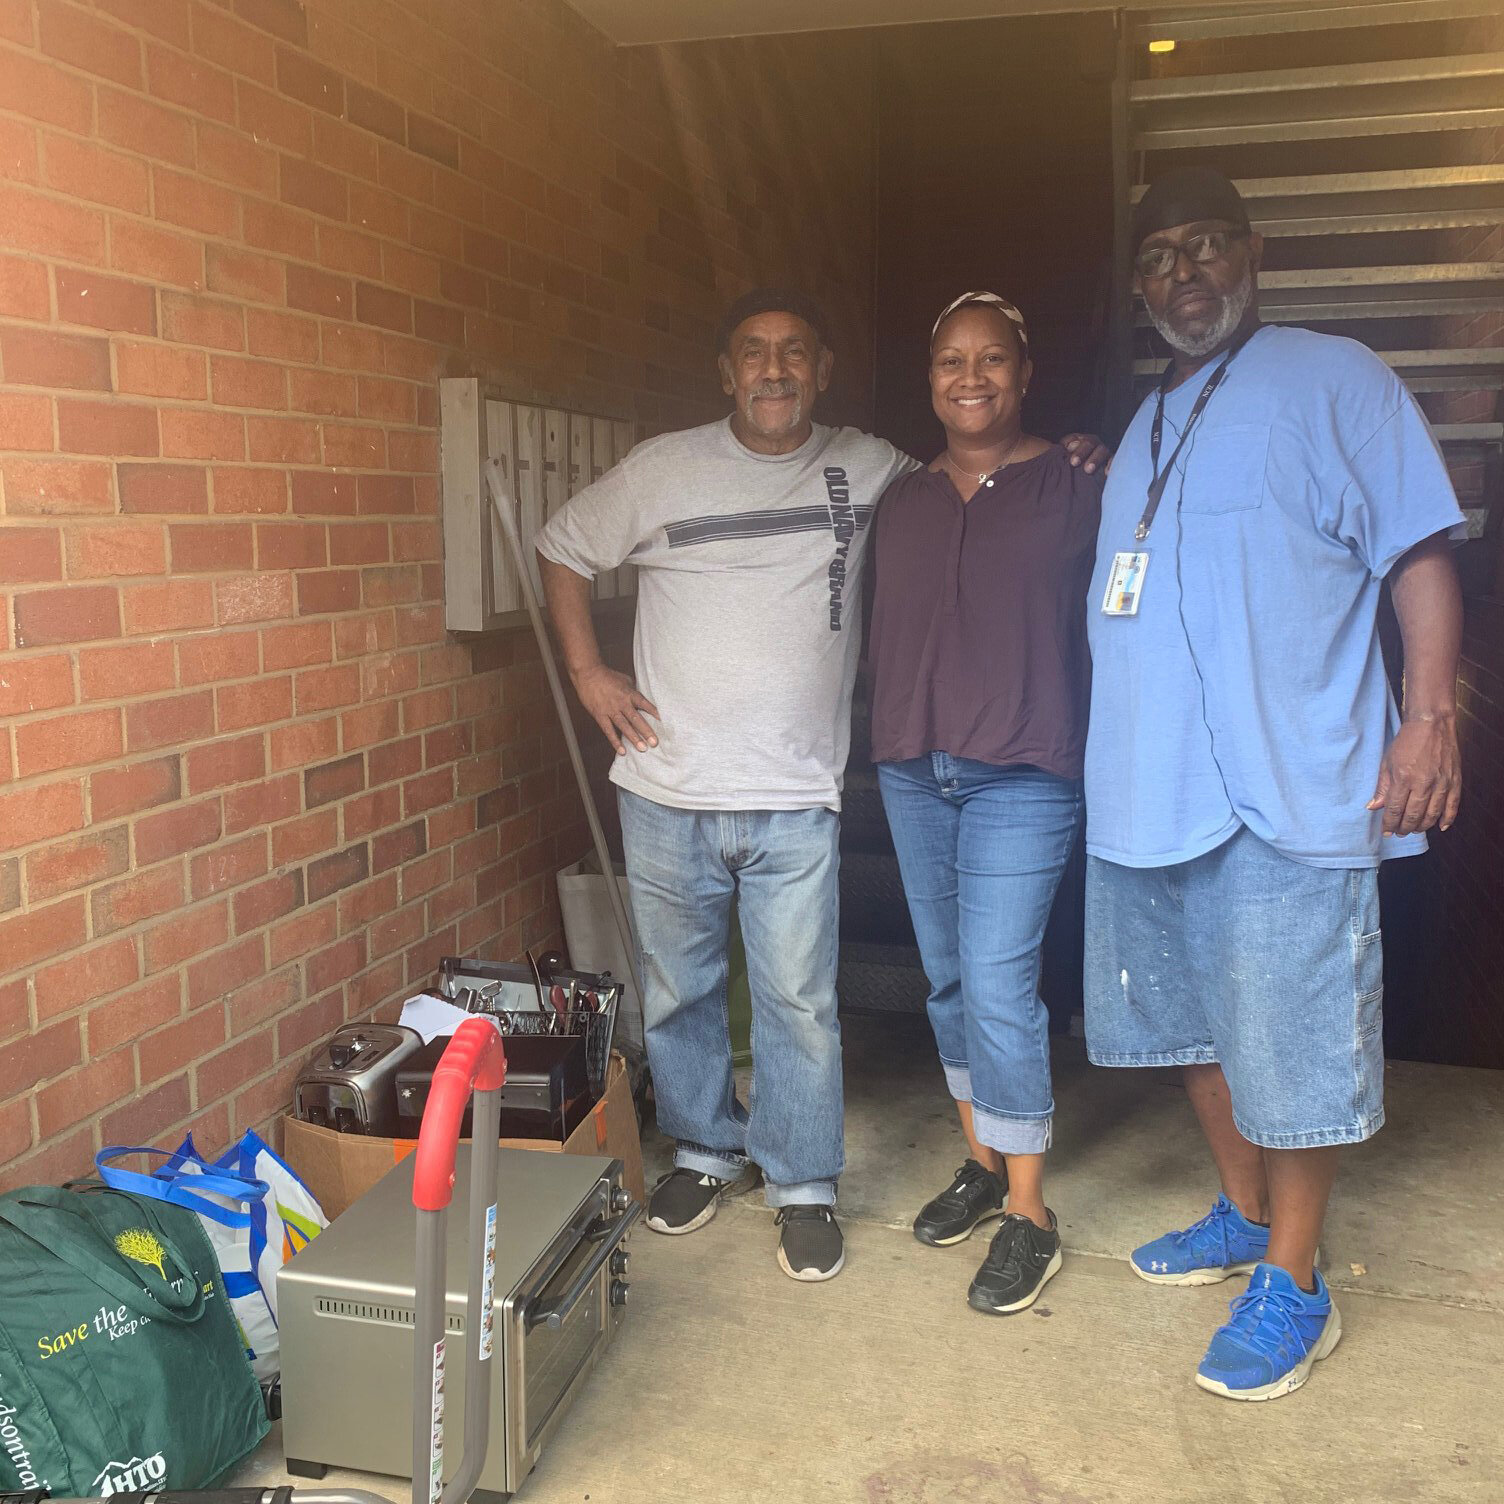 COSF Peer Navigators Tammie and Steve helping a homeless veteran get set up in his new apartment.